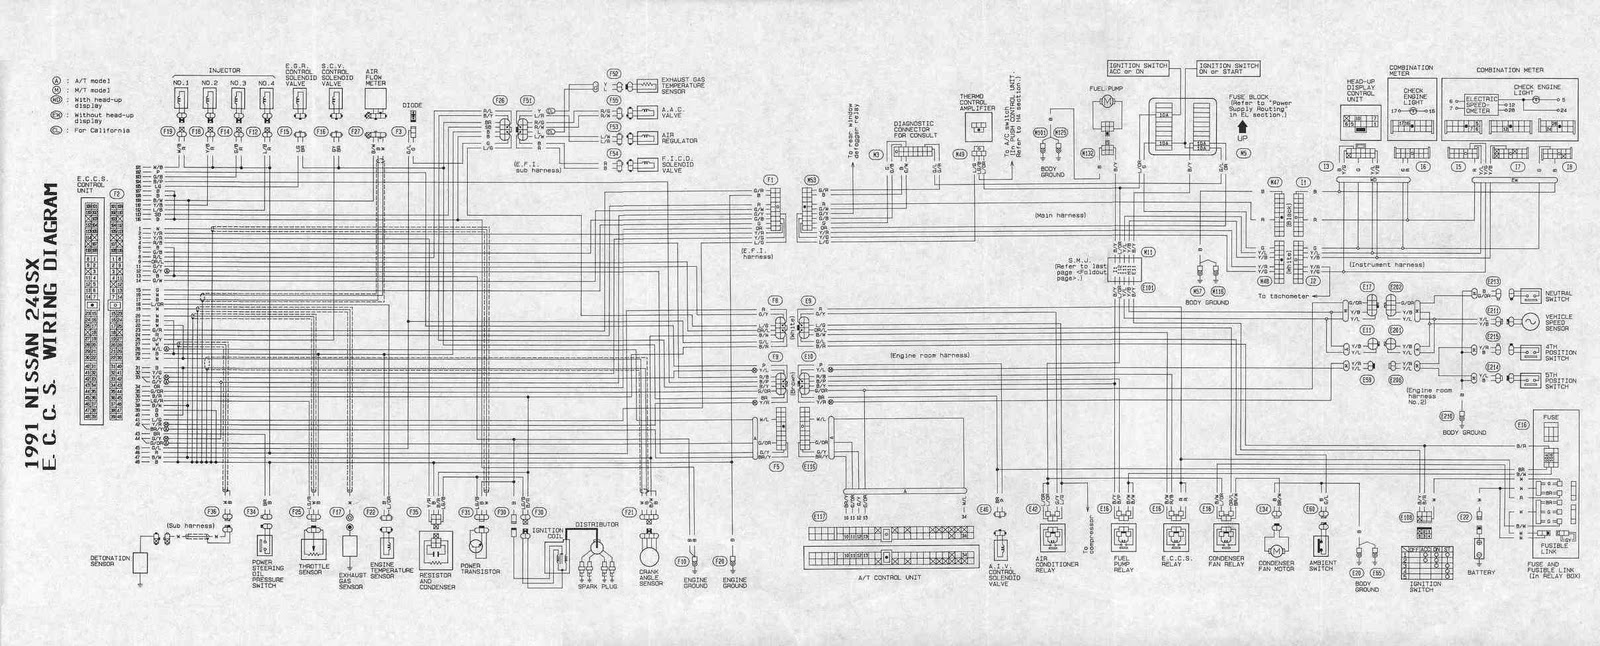 1990 Nissan 240sx fuel pump wiring diagram